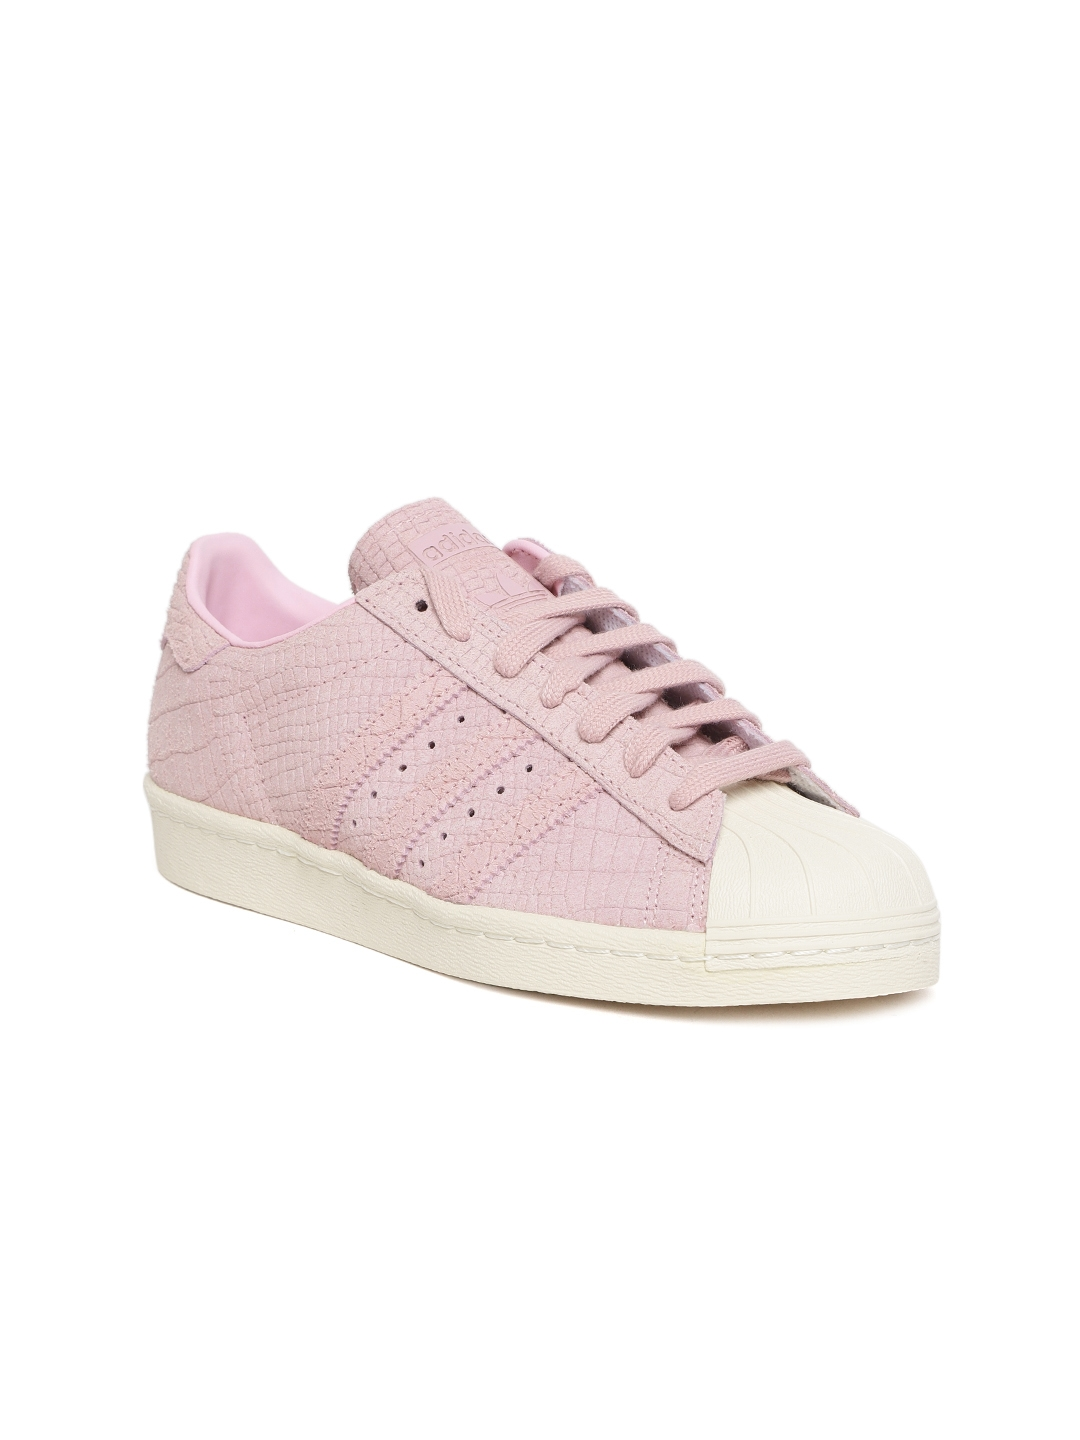 newest collection ba36a 942ea ADIDAS Originals Women Pink Superstar 80S Leather Sneakers